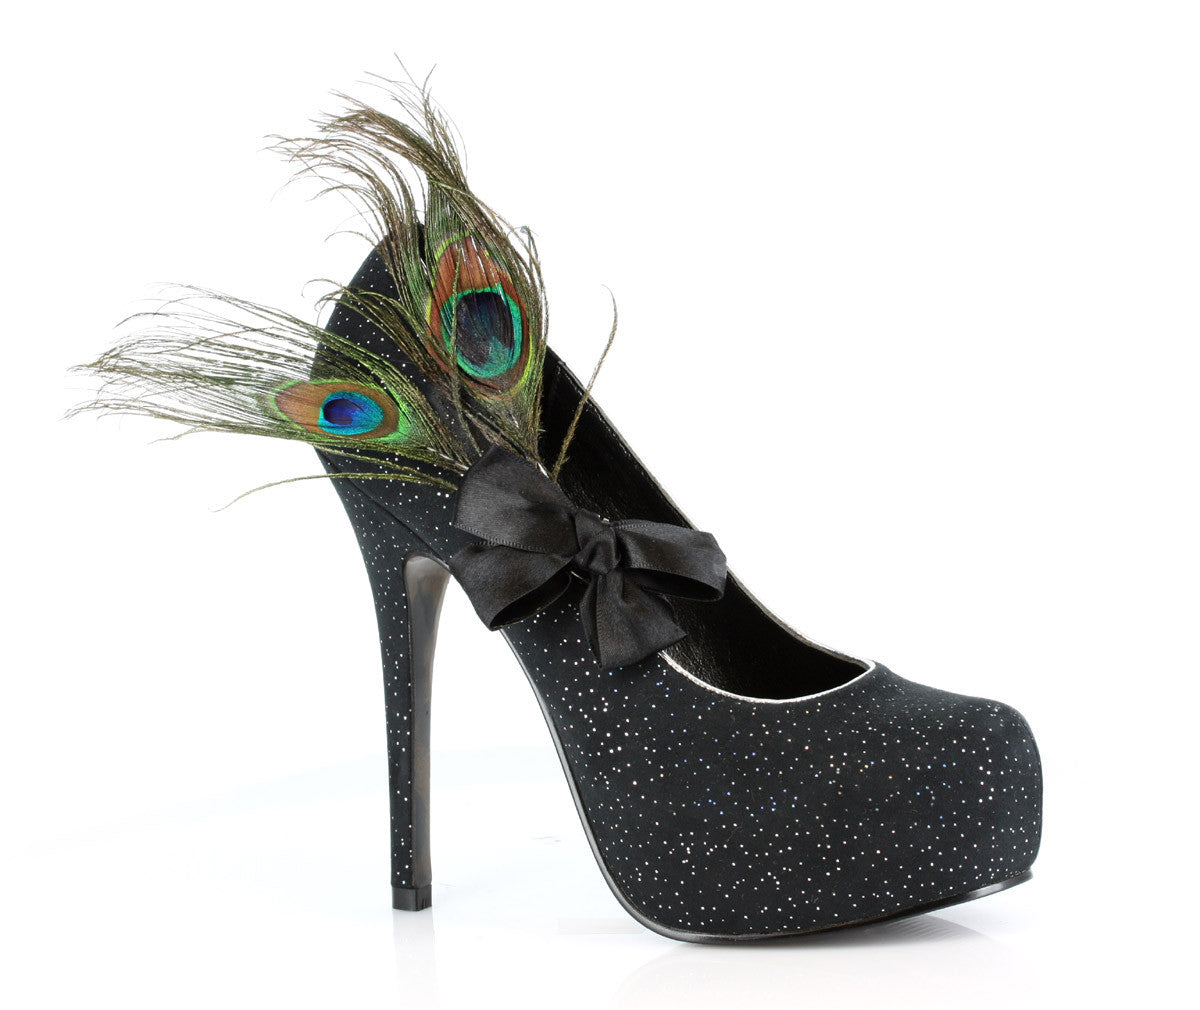 "5"" Heel with detachable peacock plume and bow"